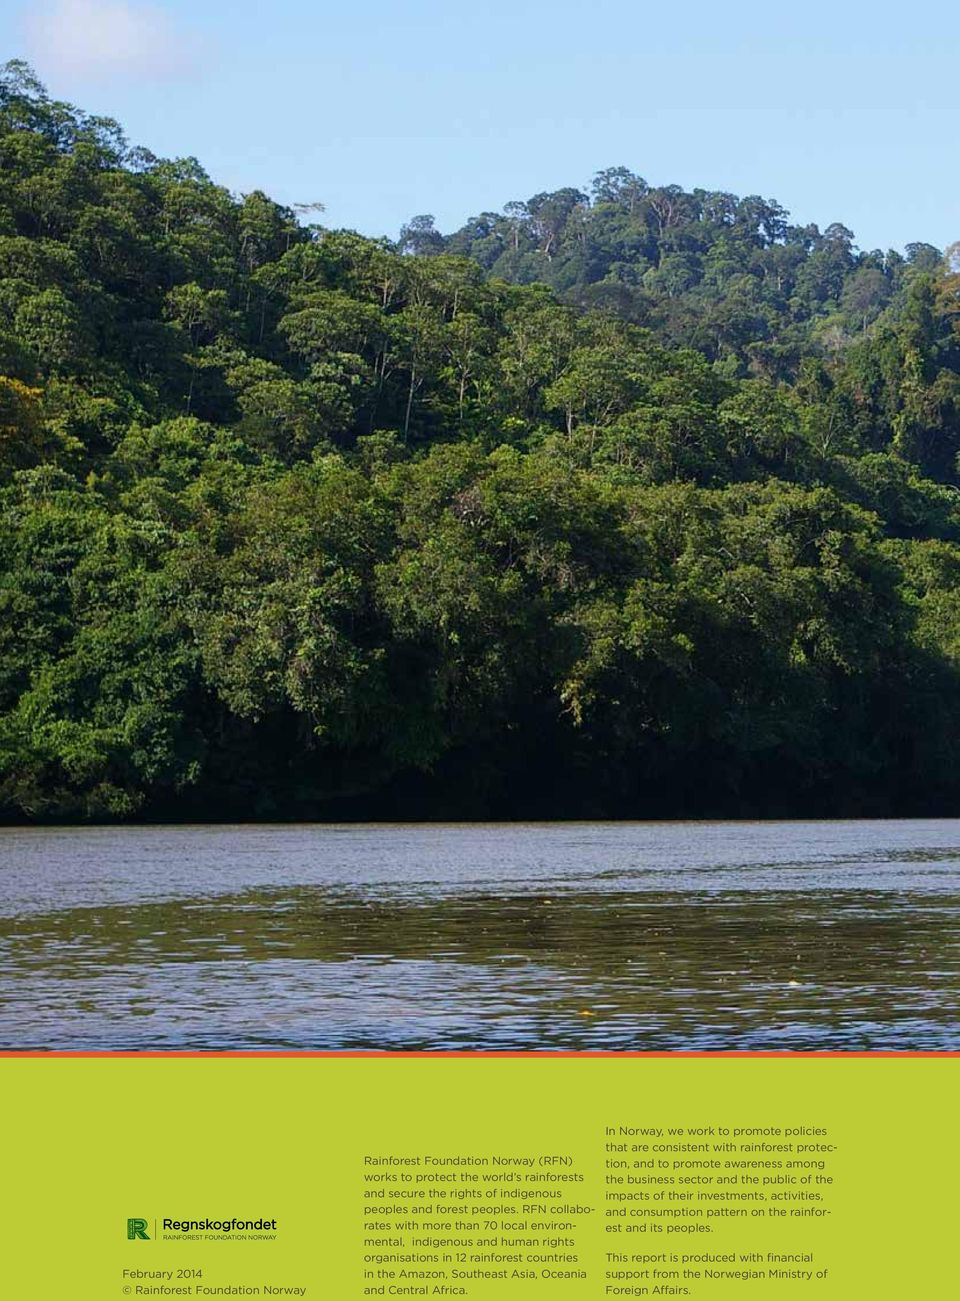 RFN collaborates with more than 70 local environmental, indigenous and human rights organisations in 12 rainforest countries in the Amazon, Southeast Asia, Oceania and Central